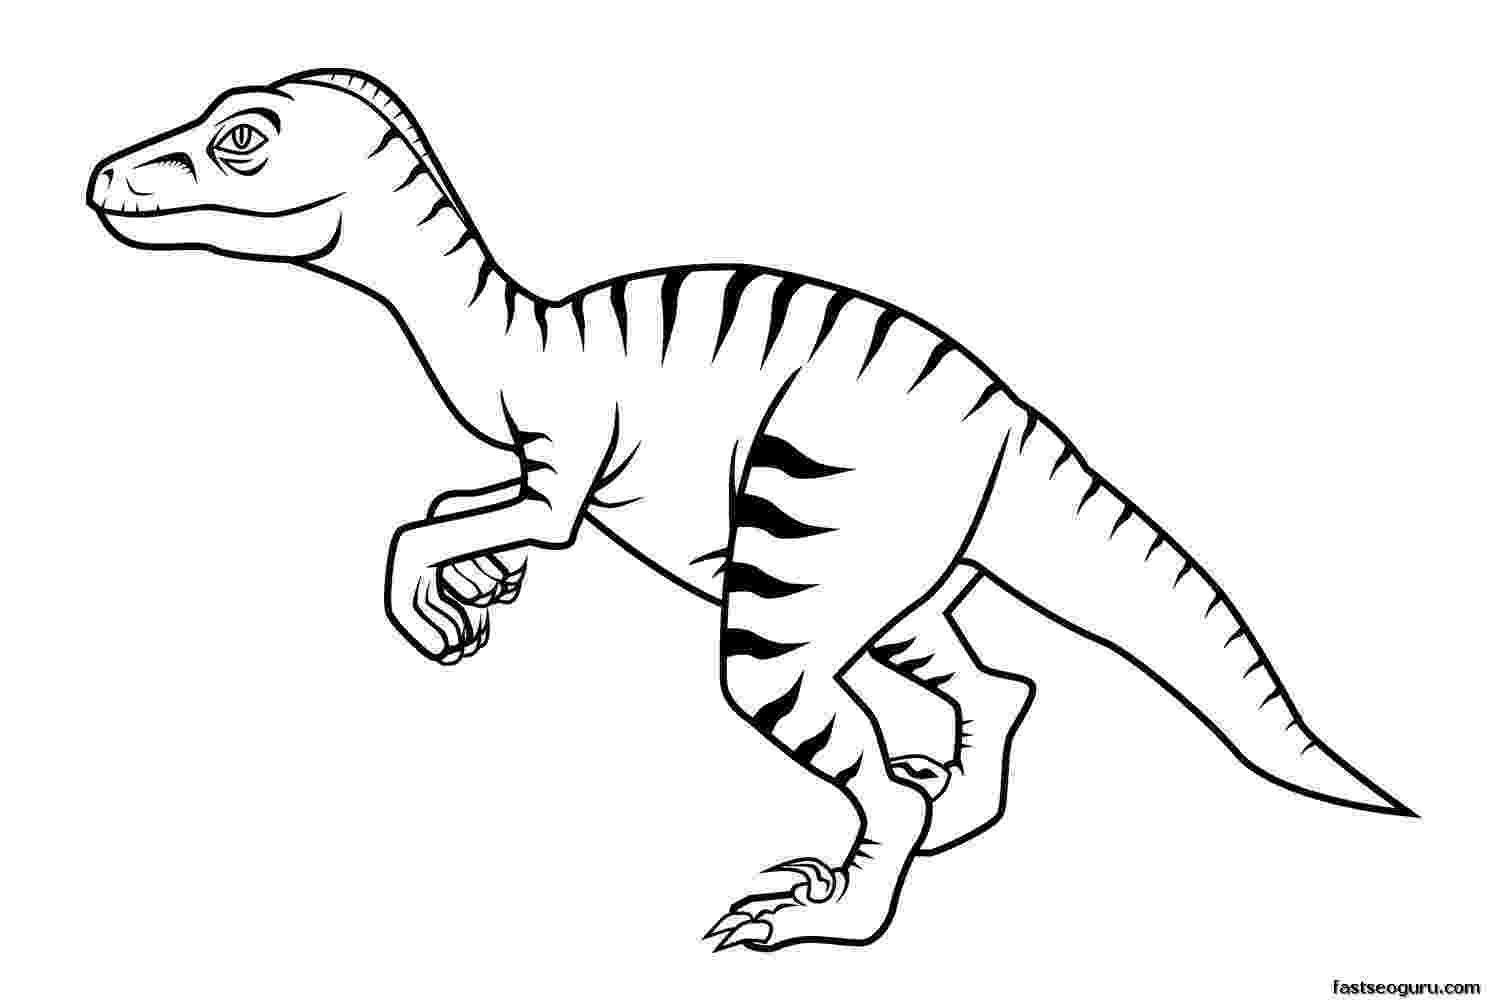 color dinosaur free coloring pages printable pictures to color kids dinosaur color